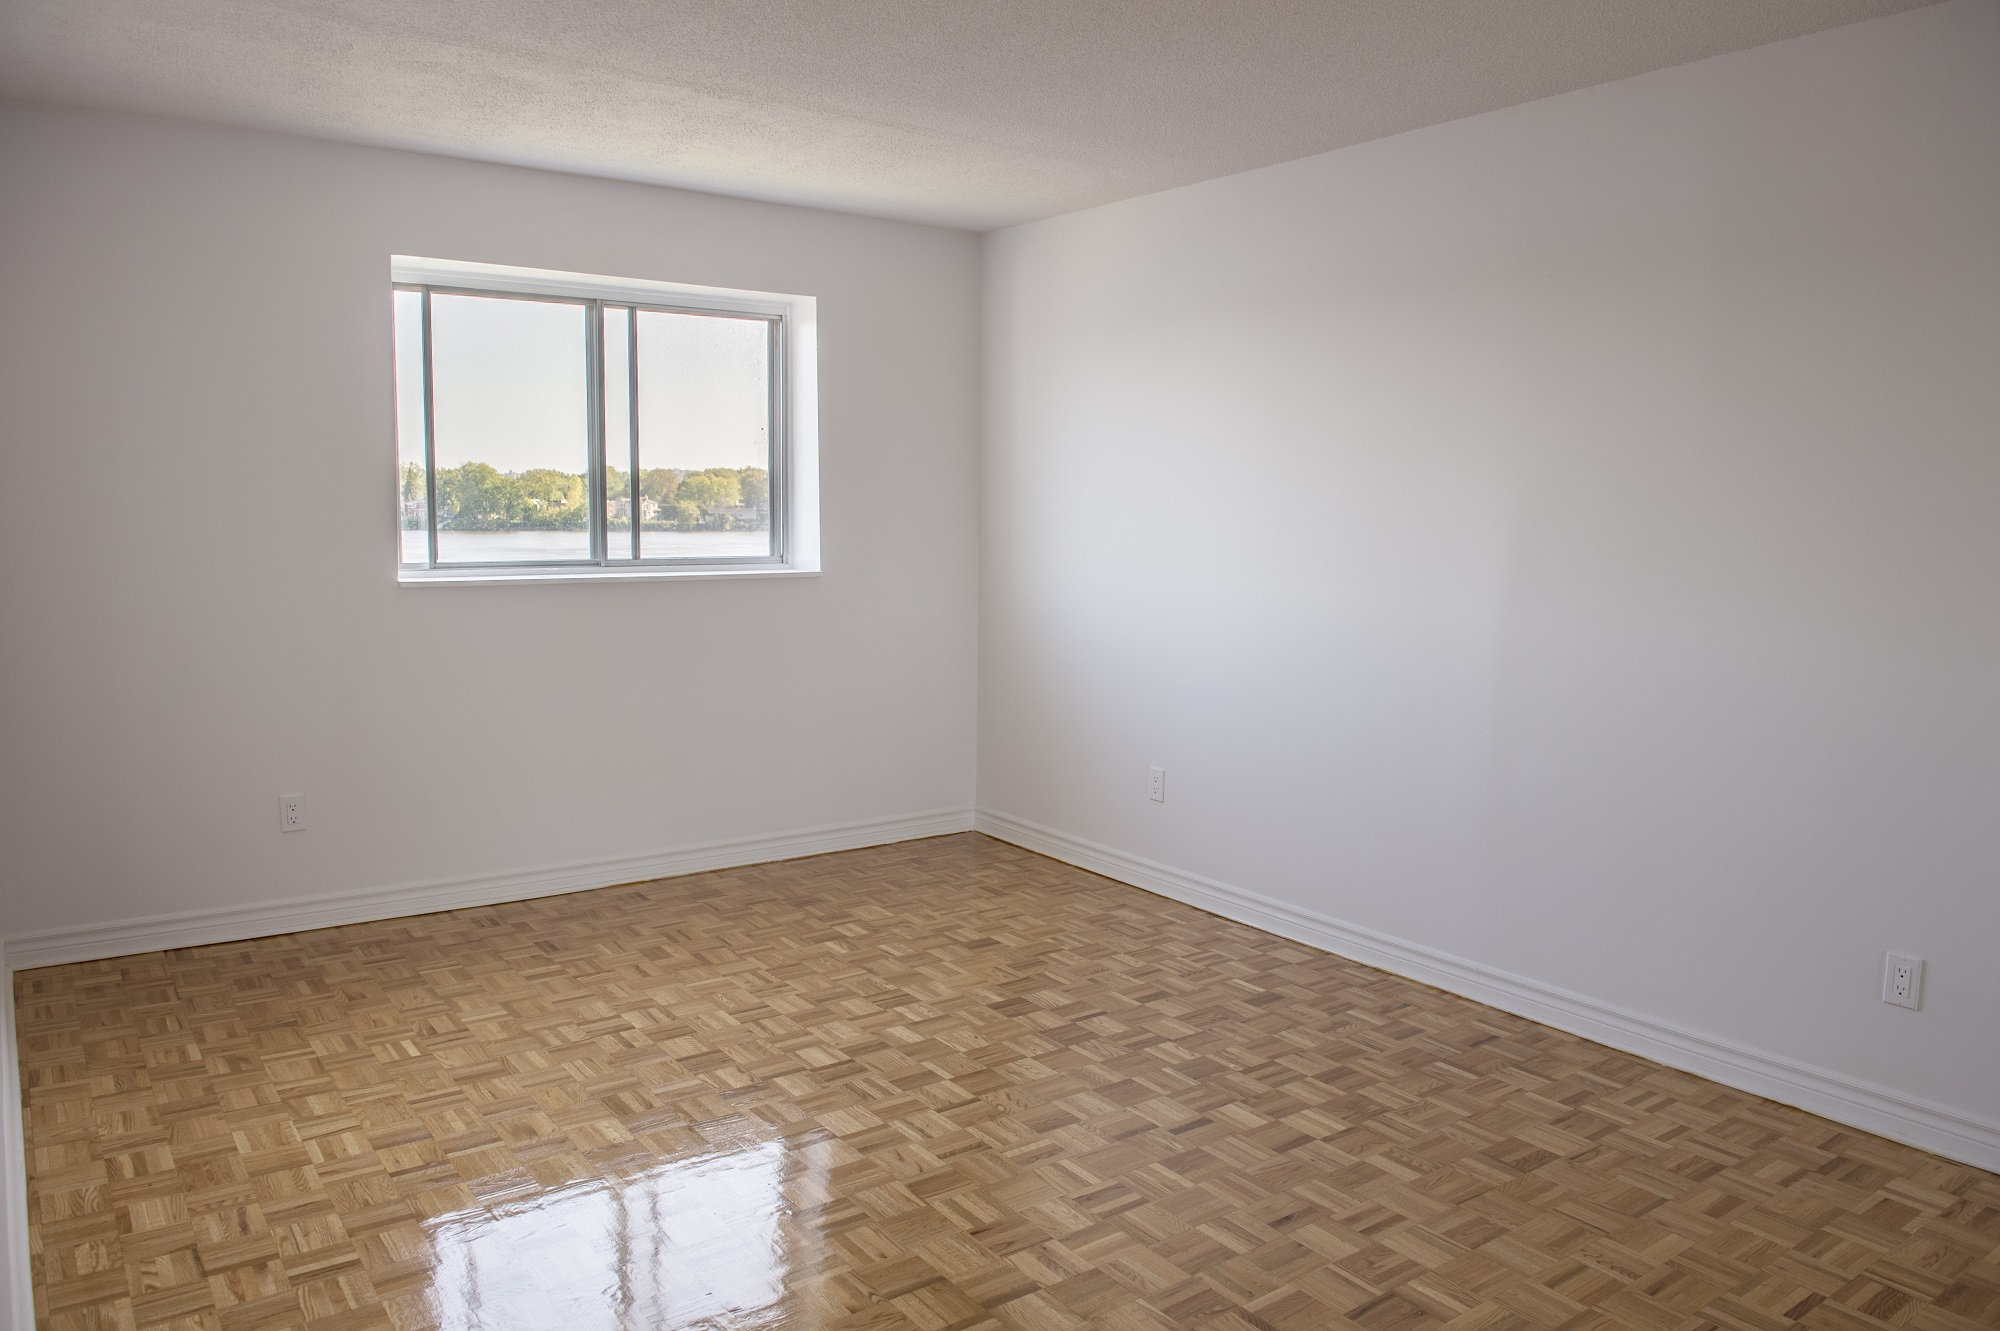 Appartement Studio / Bachelor a louer à Laval a Le Castel de Laval - Photo 04 - TrouveUnAppart – L6085